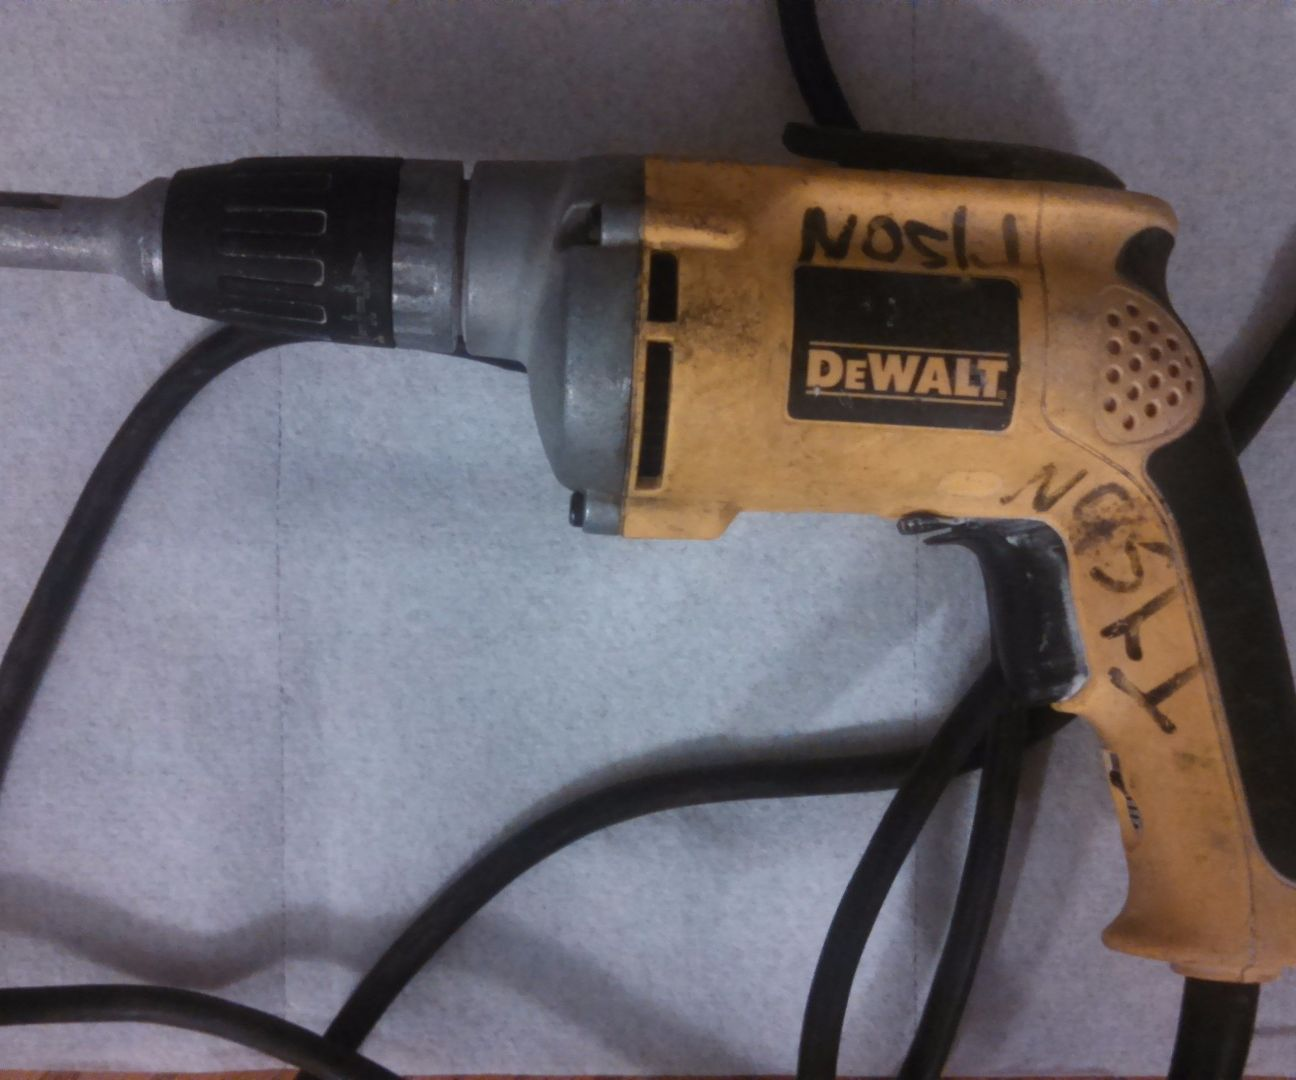 hight resolution of dewalt drywall scrugun repair 6 steps with pictures de walt power tool wiring diagrams